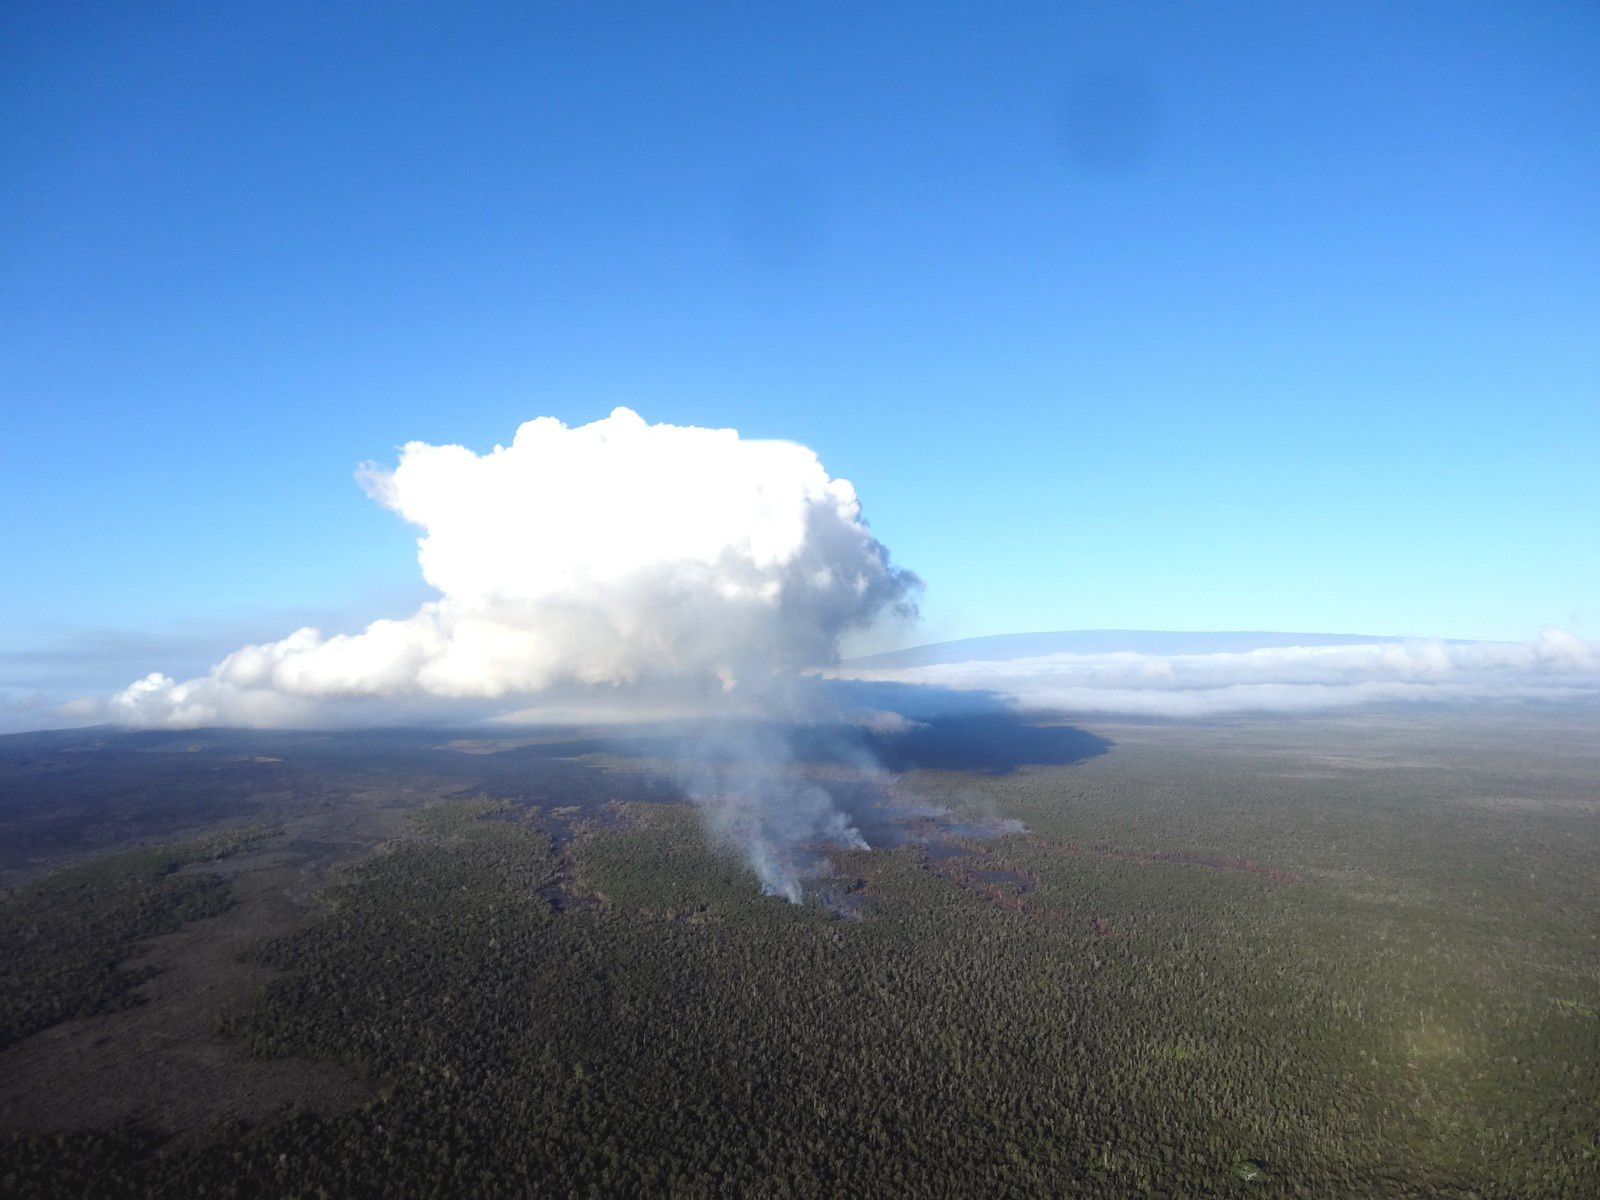 Vieuw of the Kahauale'a 2 flow front with smoke at the forest fires caused . You can see the Mauna Loa in the background - Photo HVO / USGS / 02/20/2014